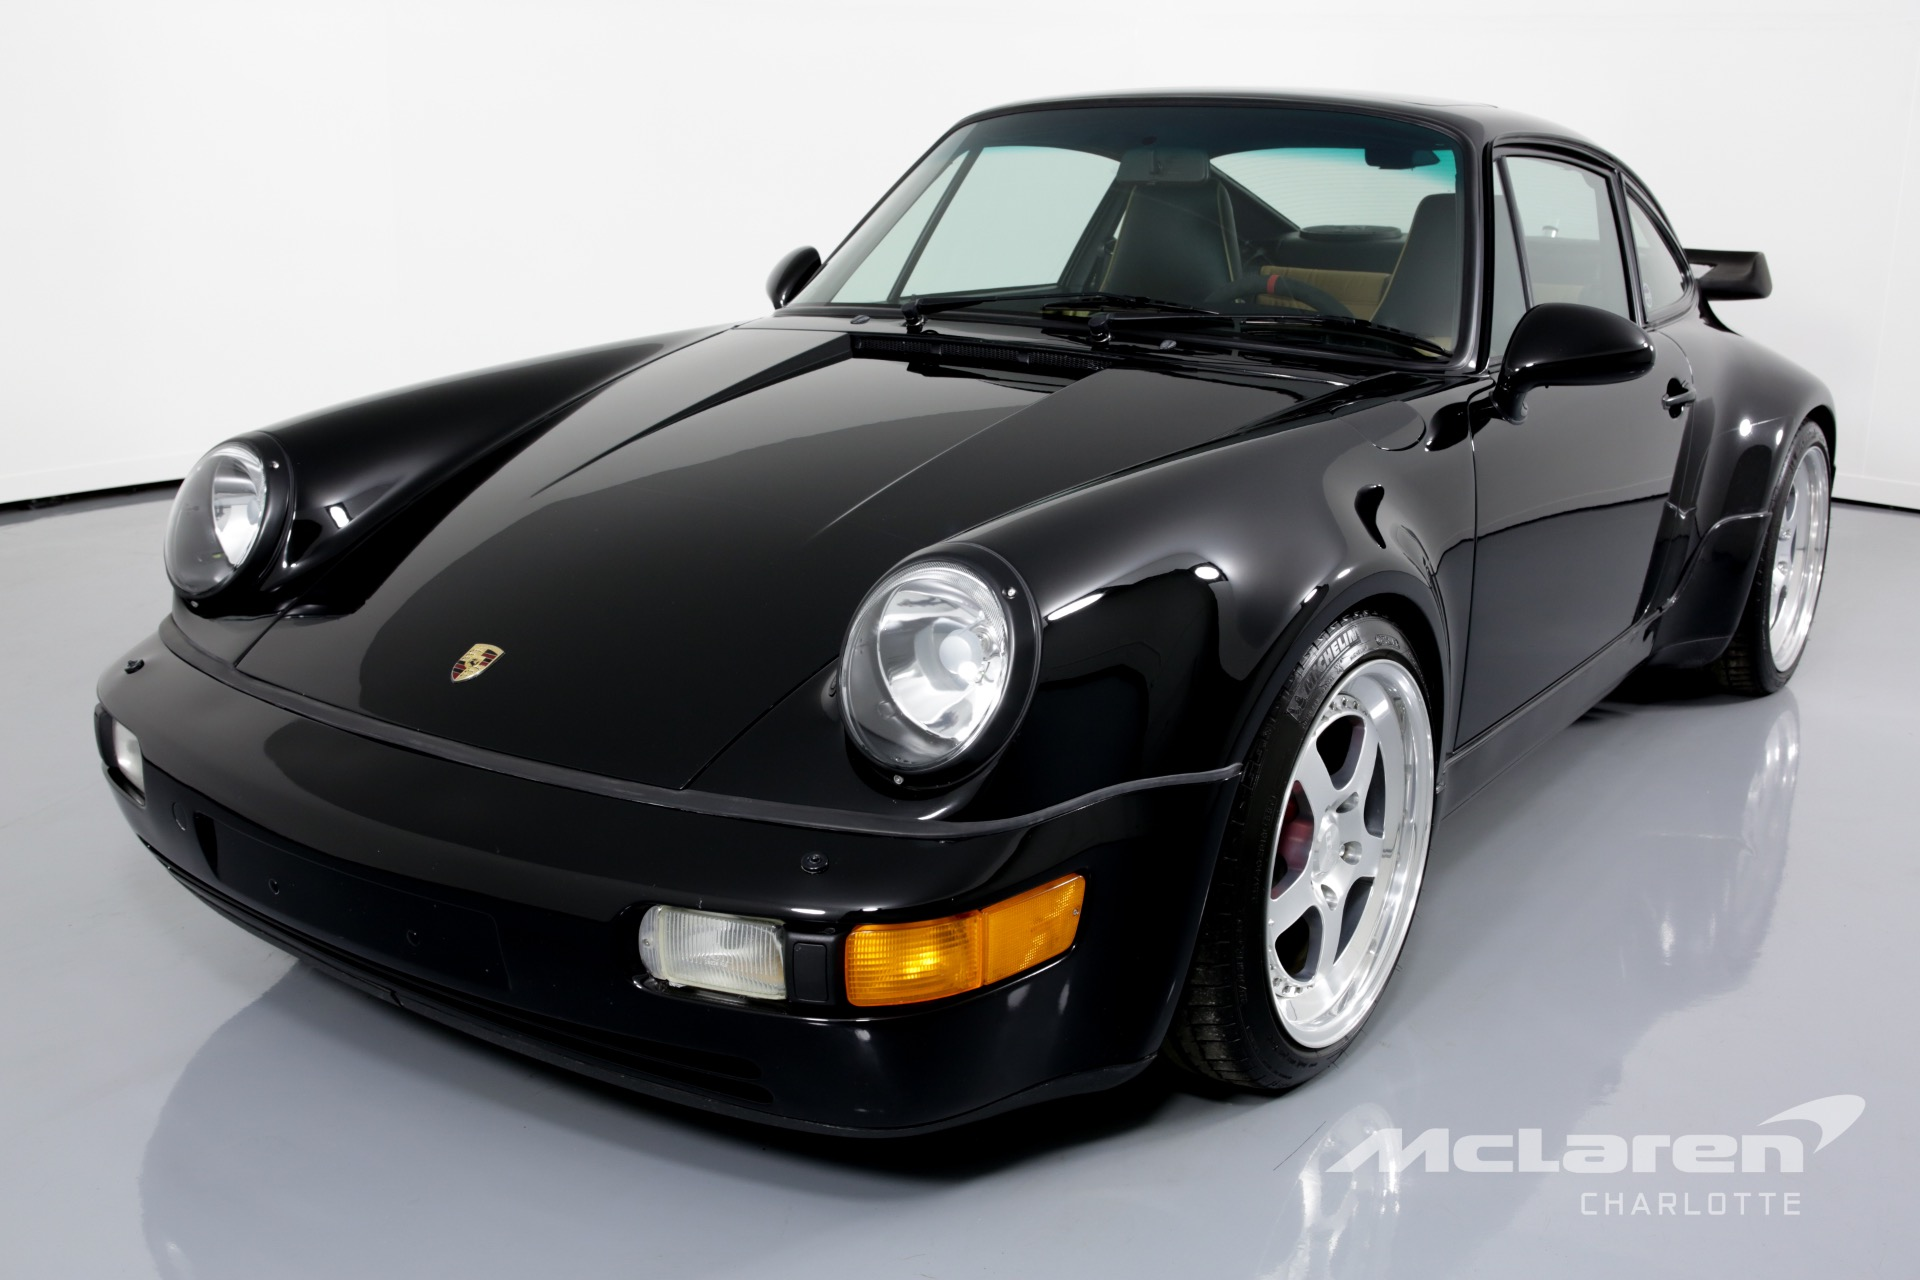 Used 1991 Porsche 911 Turbo | Charlotte, NC